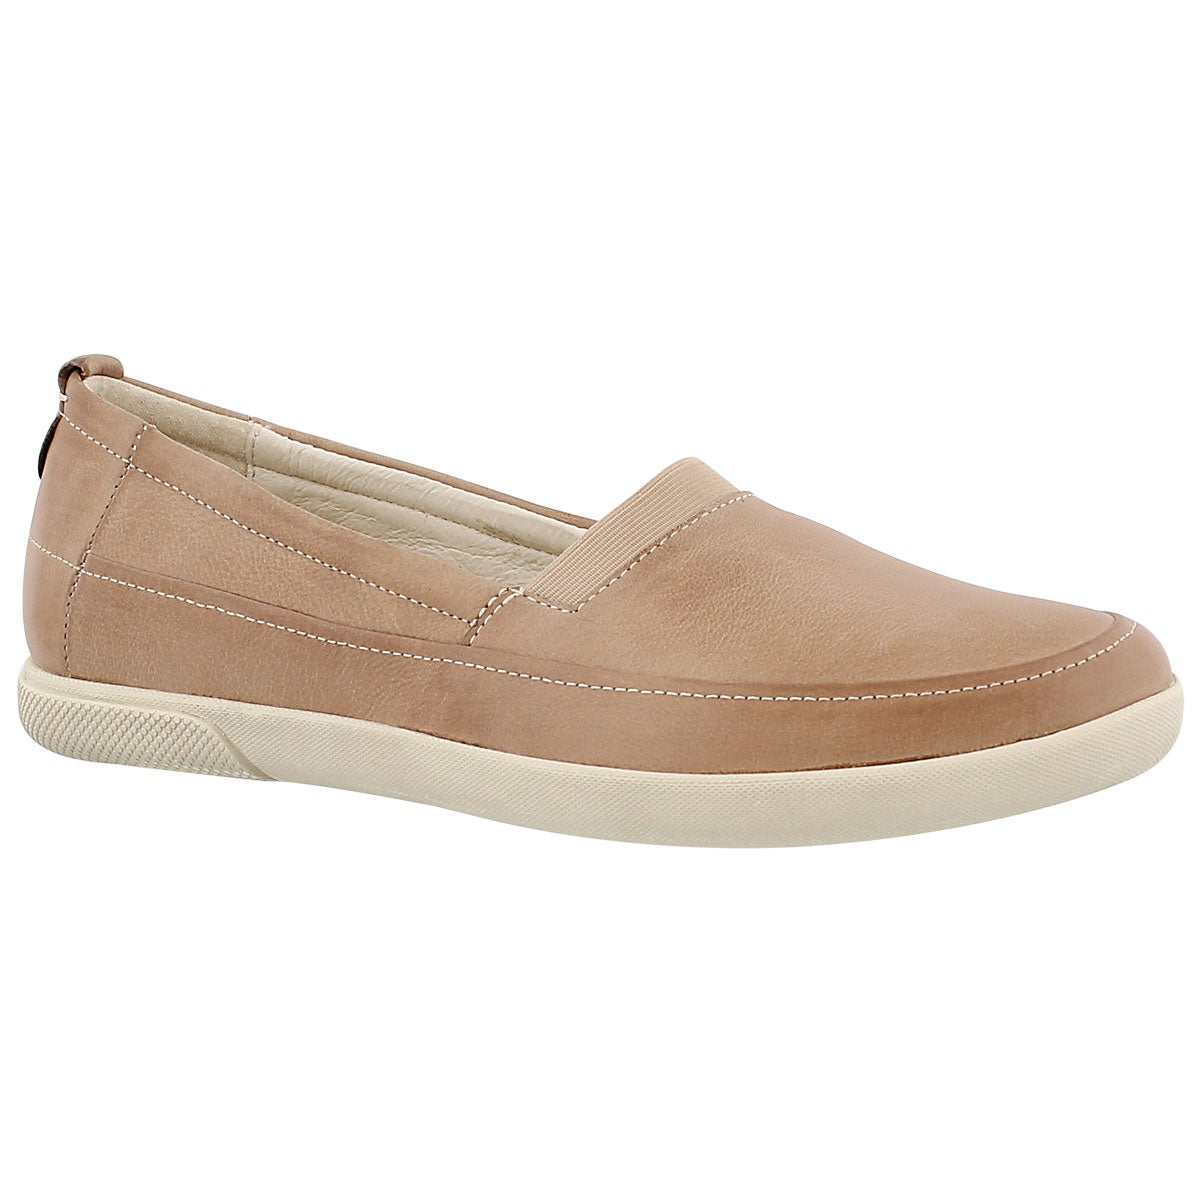 Women's CIARA 11 beige slip on casual shoes